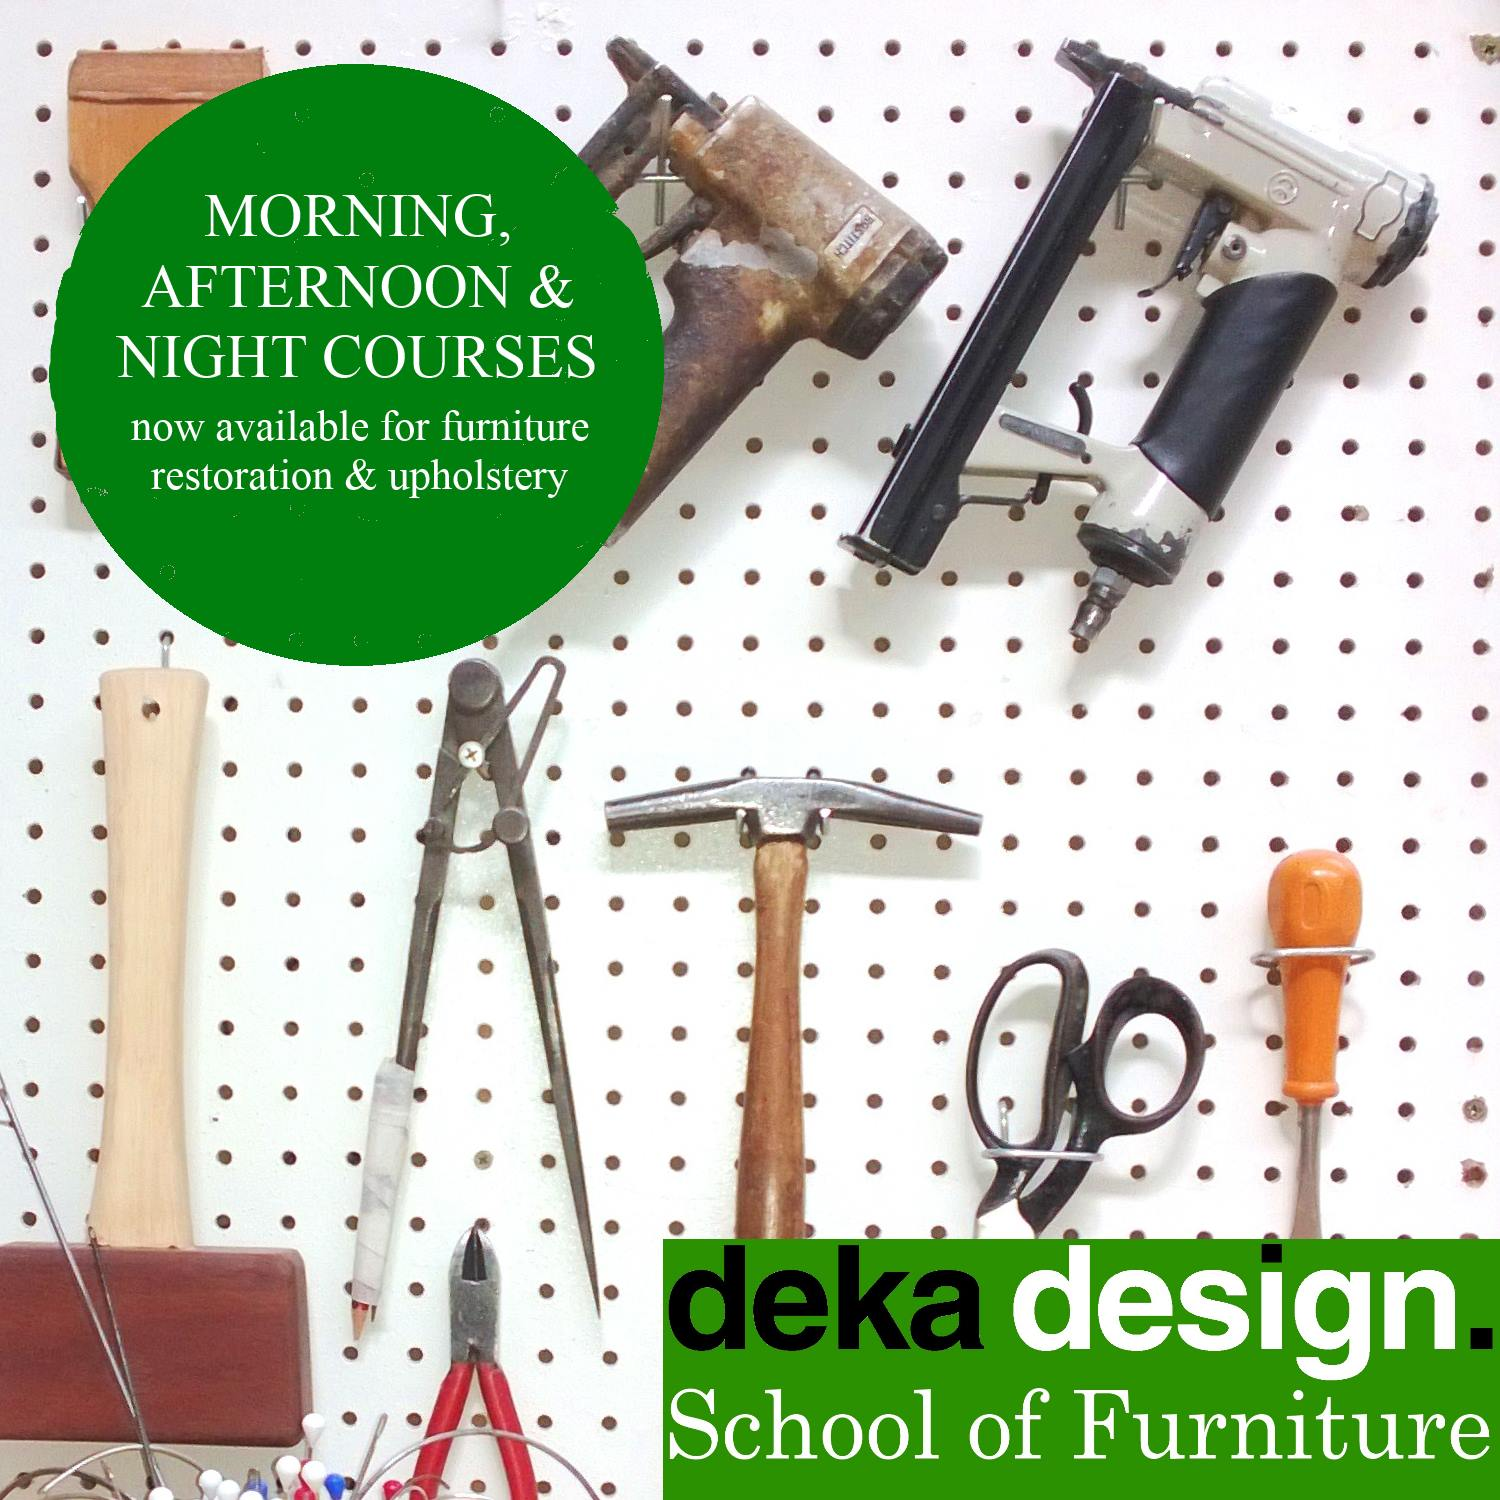 Furniture restoration and upholstery courses lasse kinnunen for Furniture upholstery course